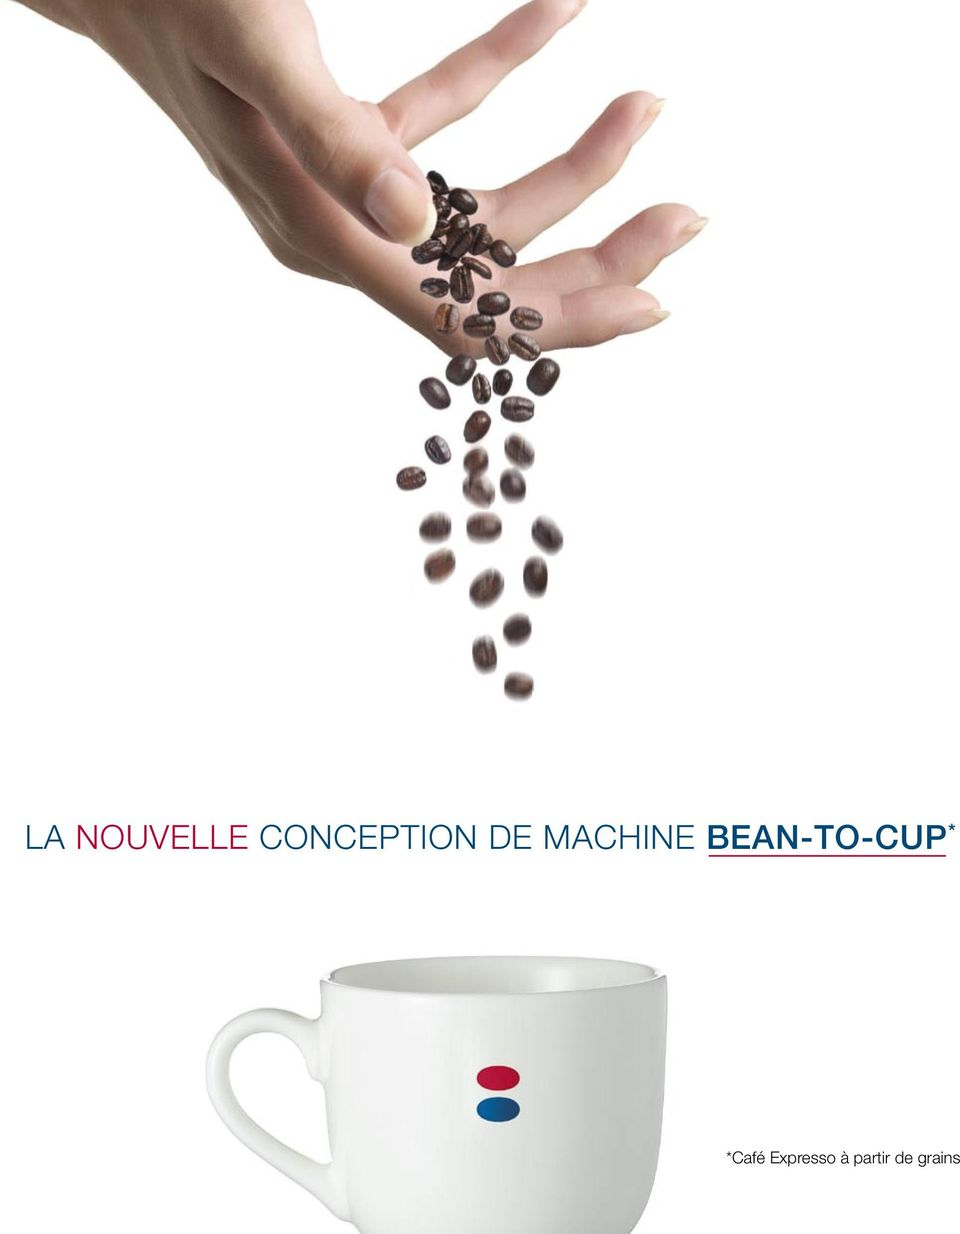 machine Bean-to-Cup